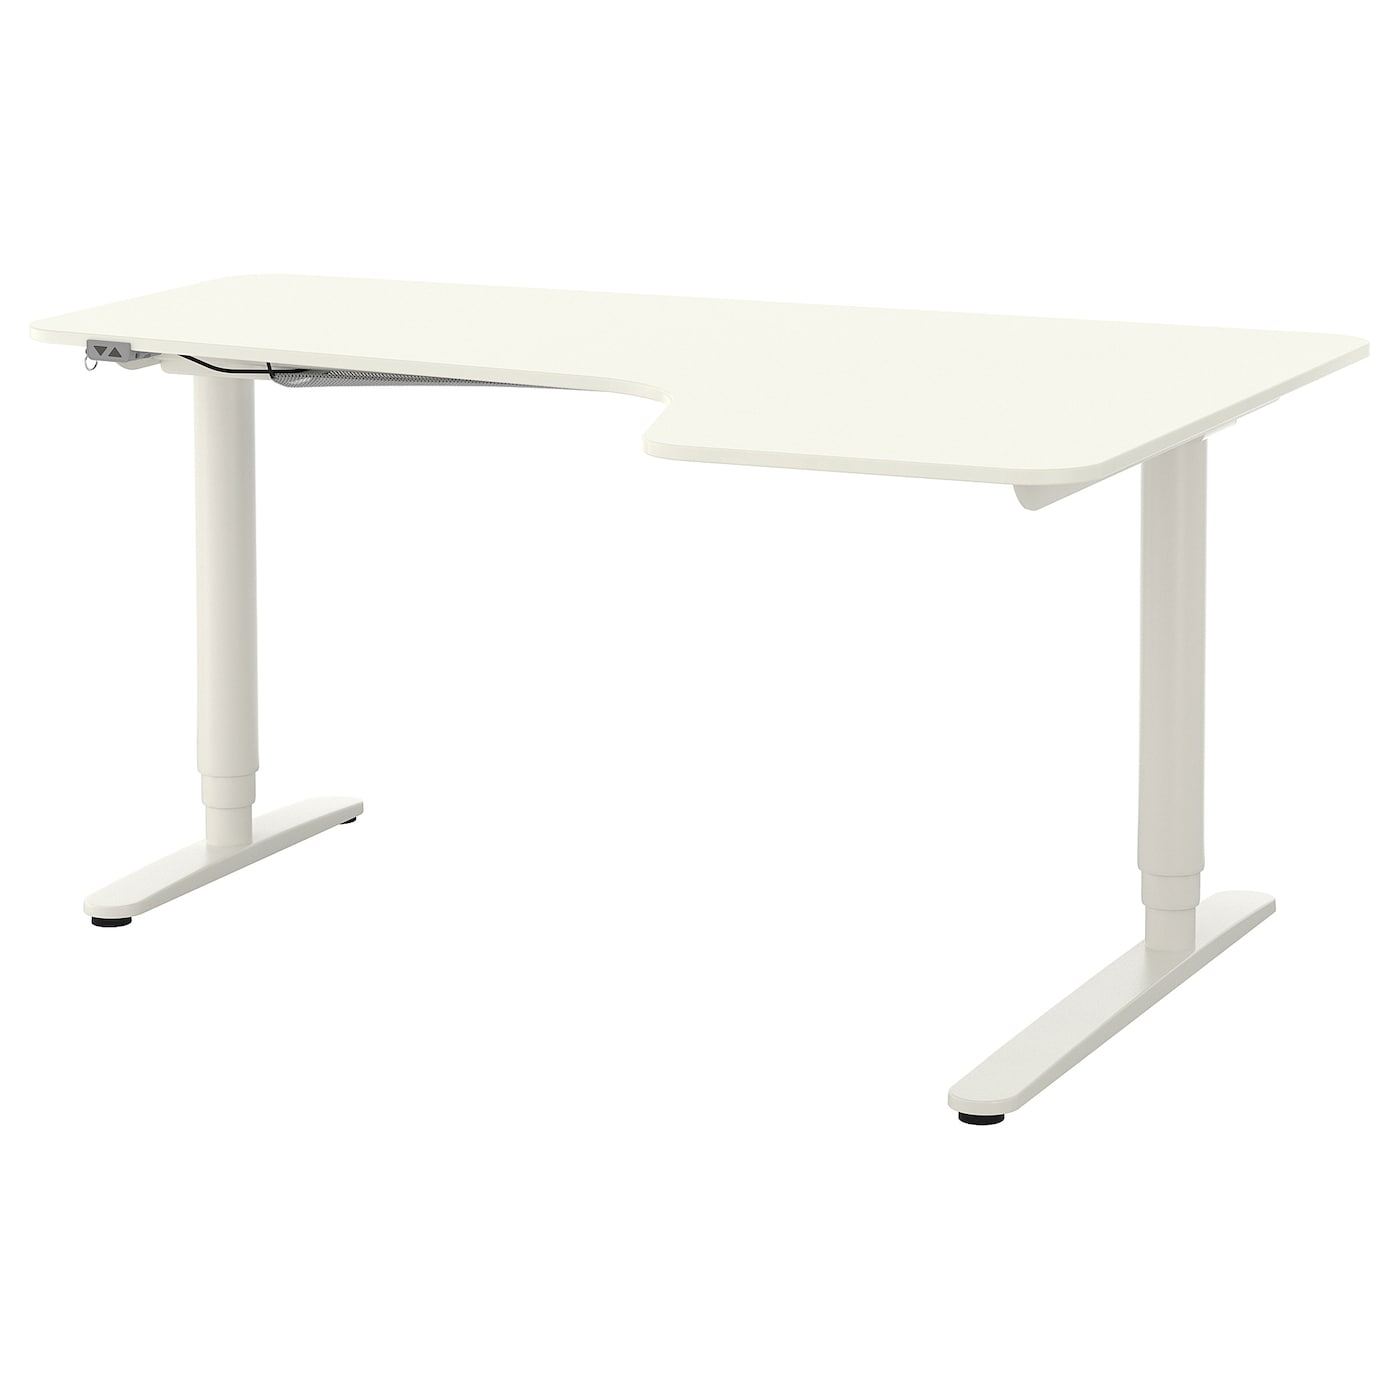 bekant bureau d 39 angle dr assis debout blanc 160 x 110 cm ikea. Black Bedroom Furniture Sets. Home Design Ideas